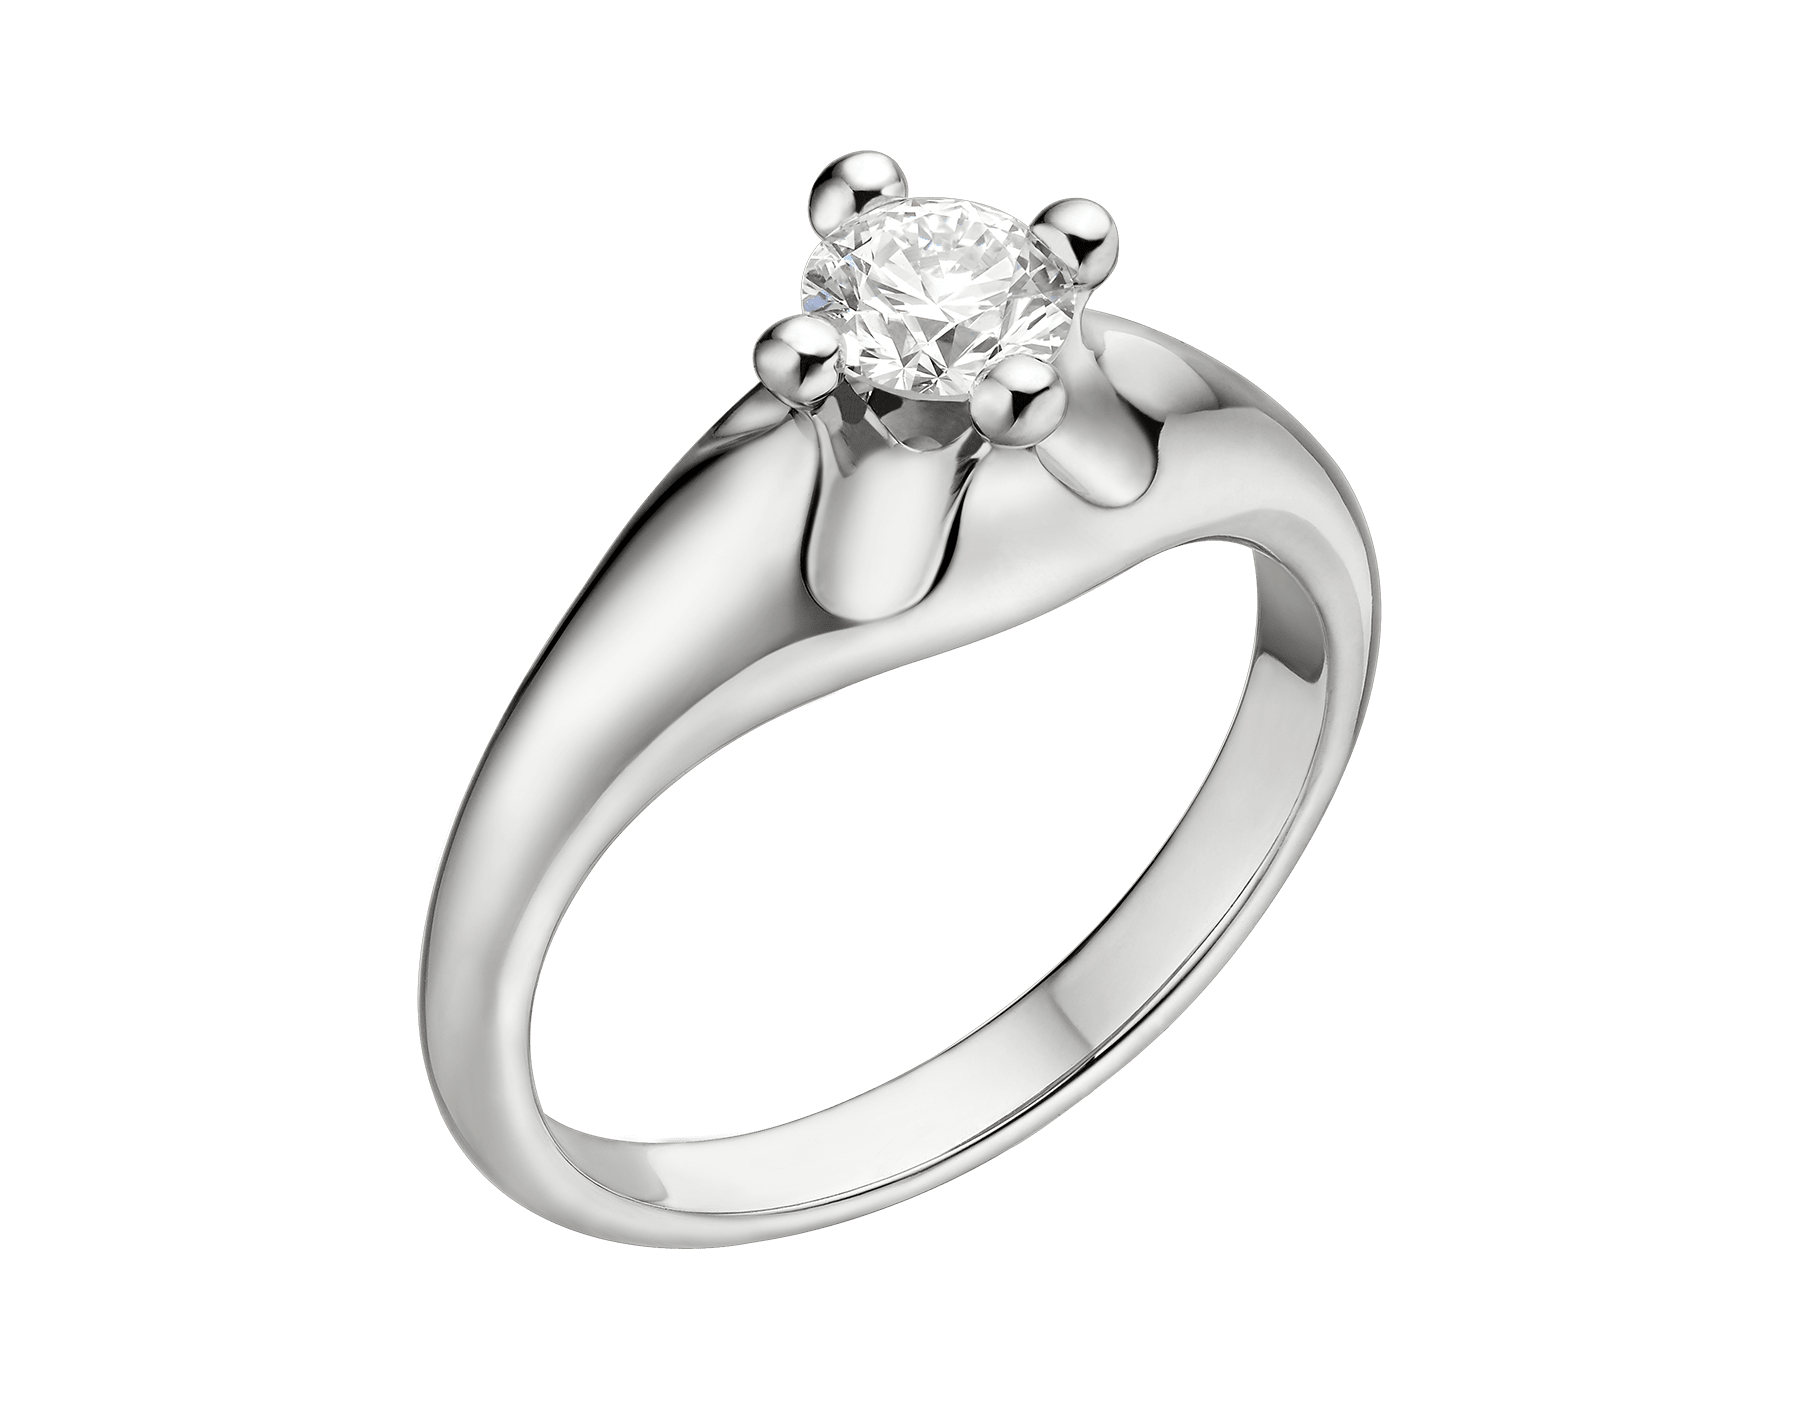 Corona solitaire ring in platinum with round brilliant cut diamond. Available from 0.30 ct. Inspired by the crown and the flower, two enduring symbols of glory and celebration since ancient times. 326293 image 2